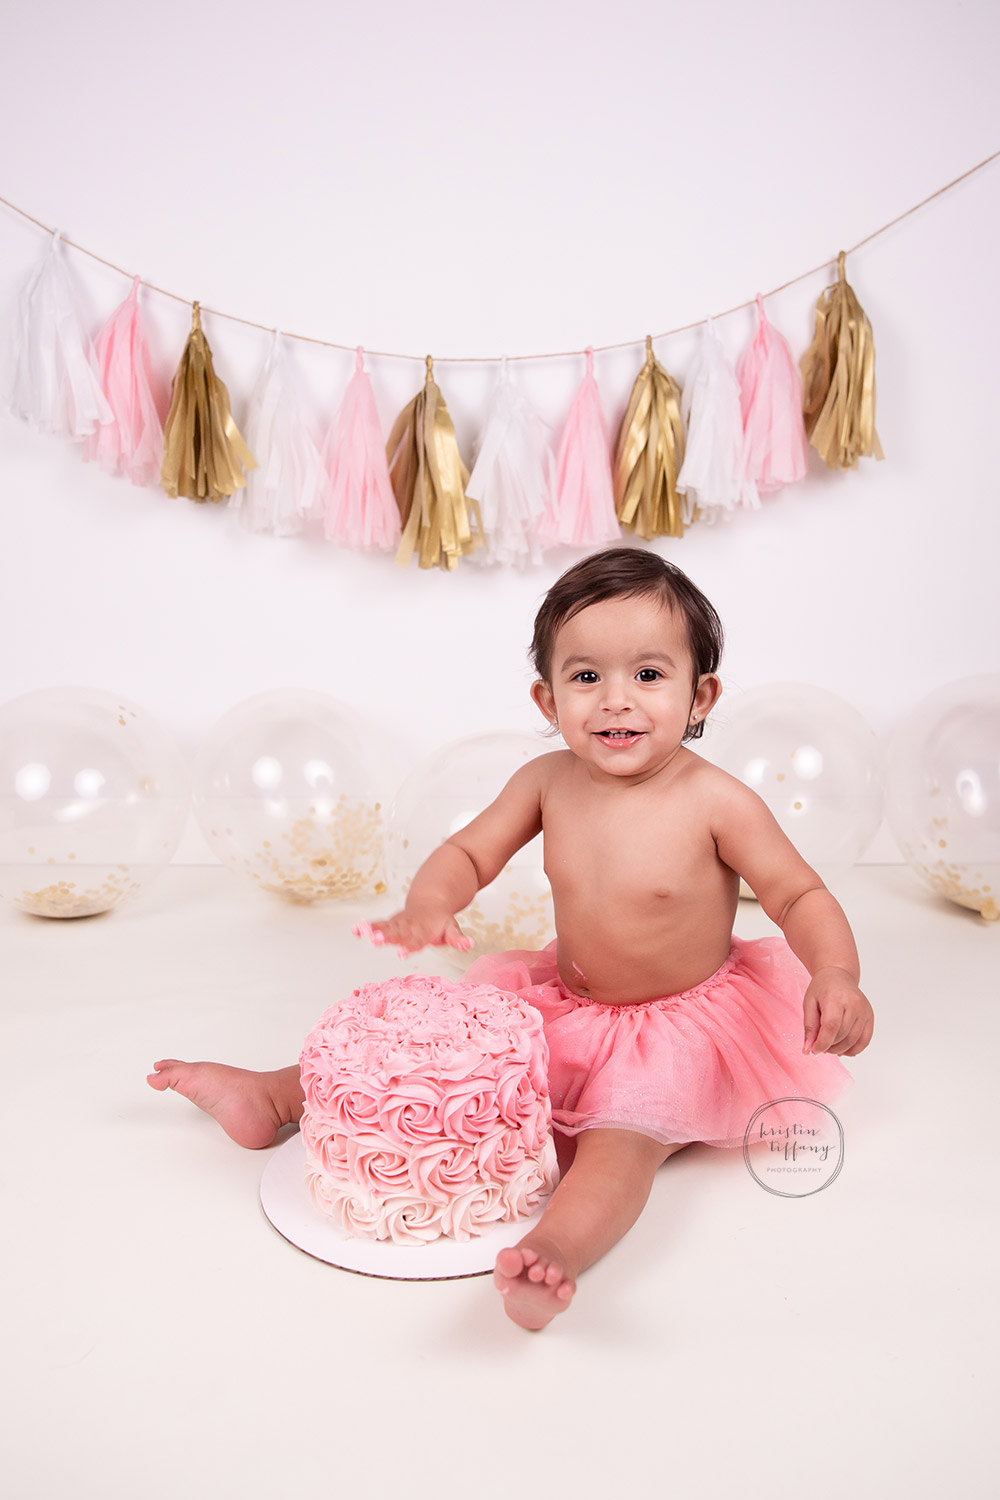 a photo of a baby girl at her cake smash session